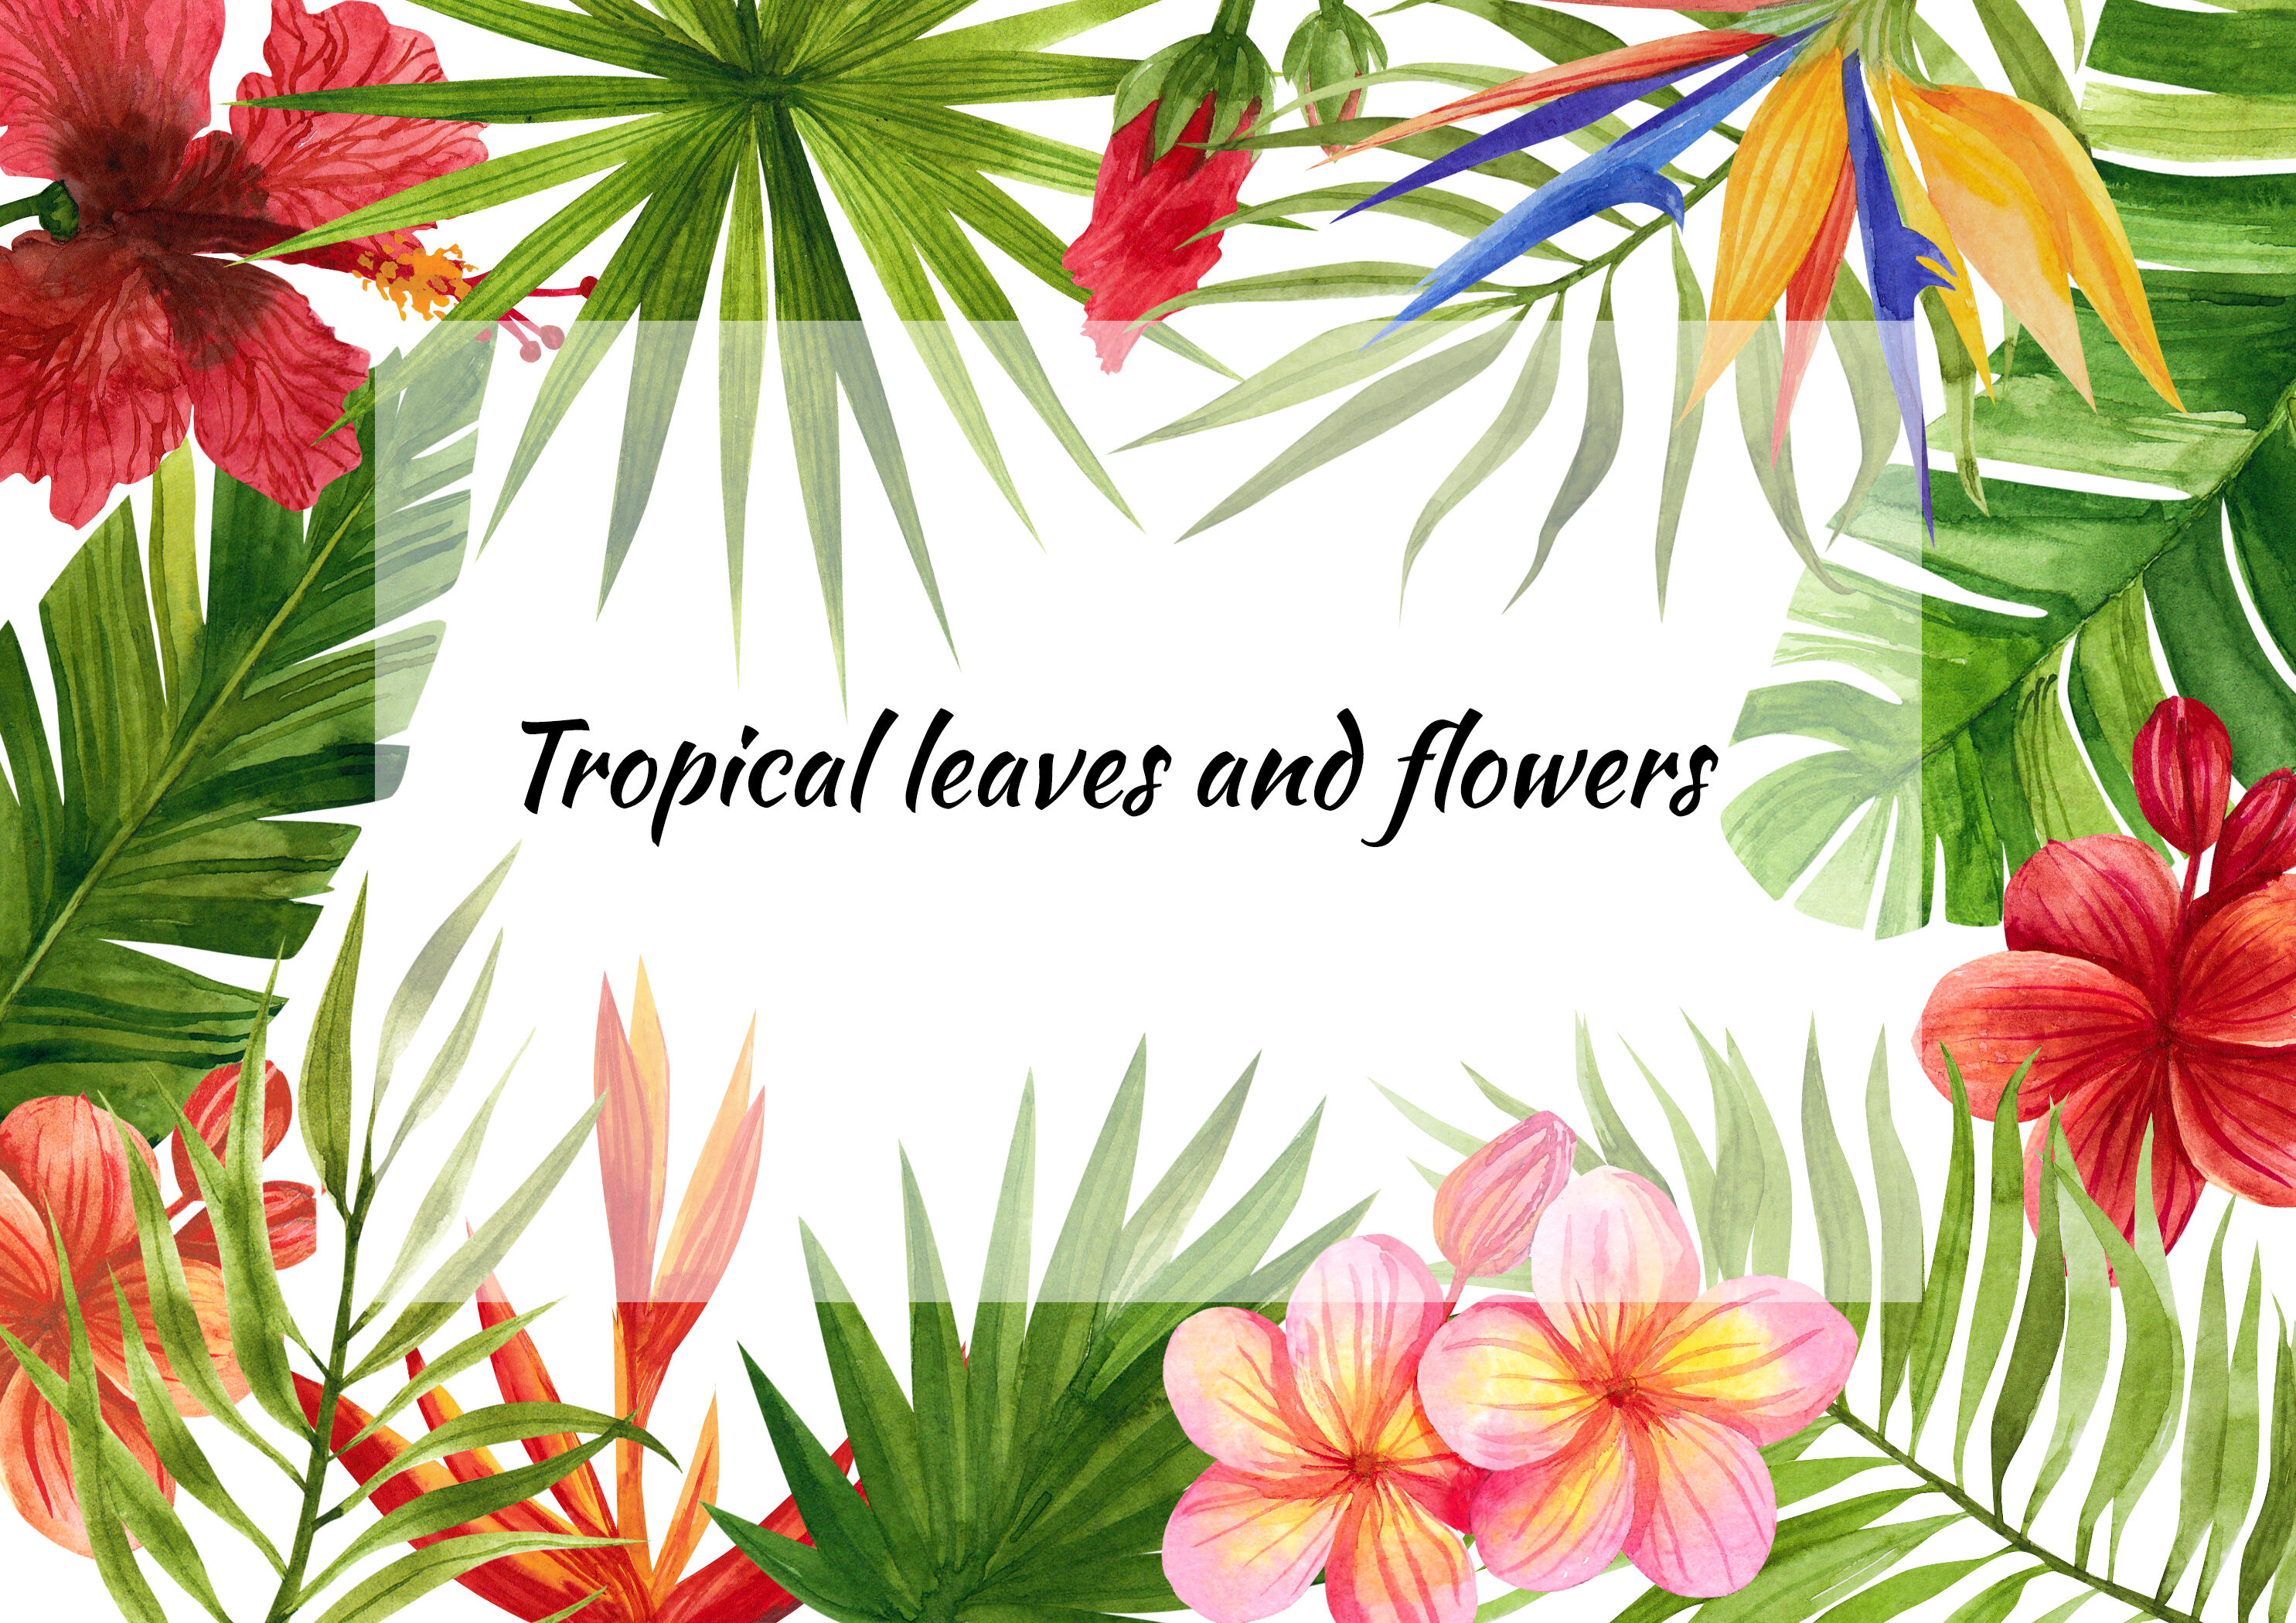 Watercolor Tropical Leaves And Flowers Clip Art Digital Drawing Trop By Xandpic Art Thehungryjpeg Com Polish your personal project or design with these tropical leaves. flowers clip art digital drawing trop